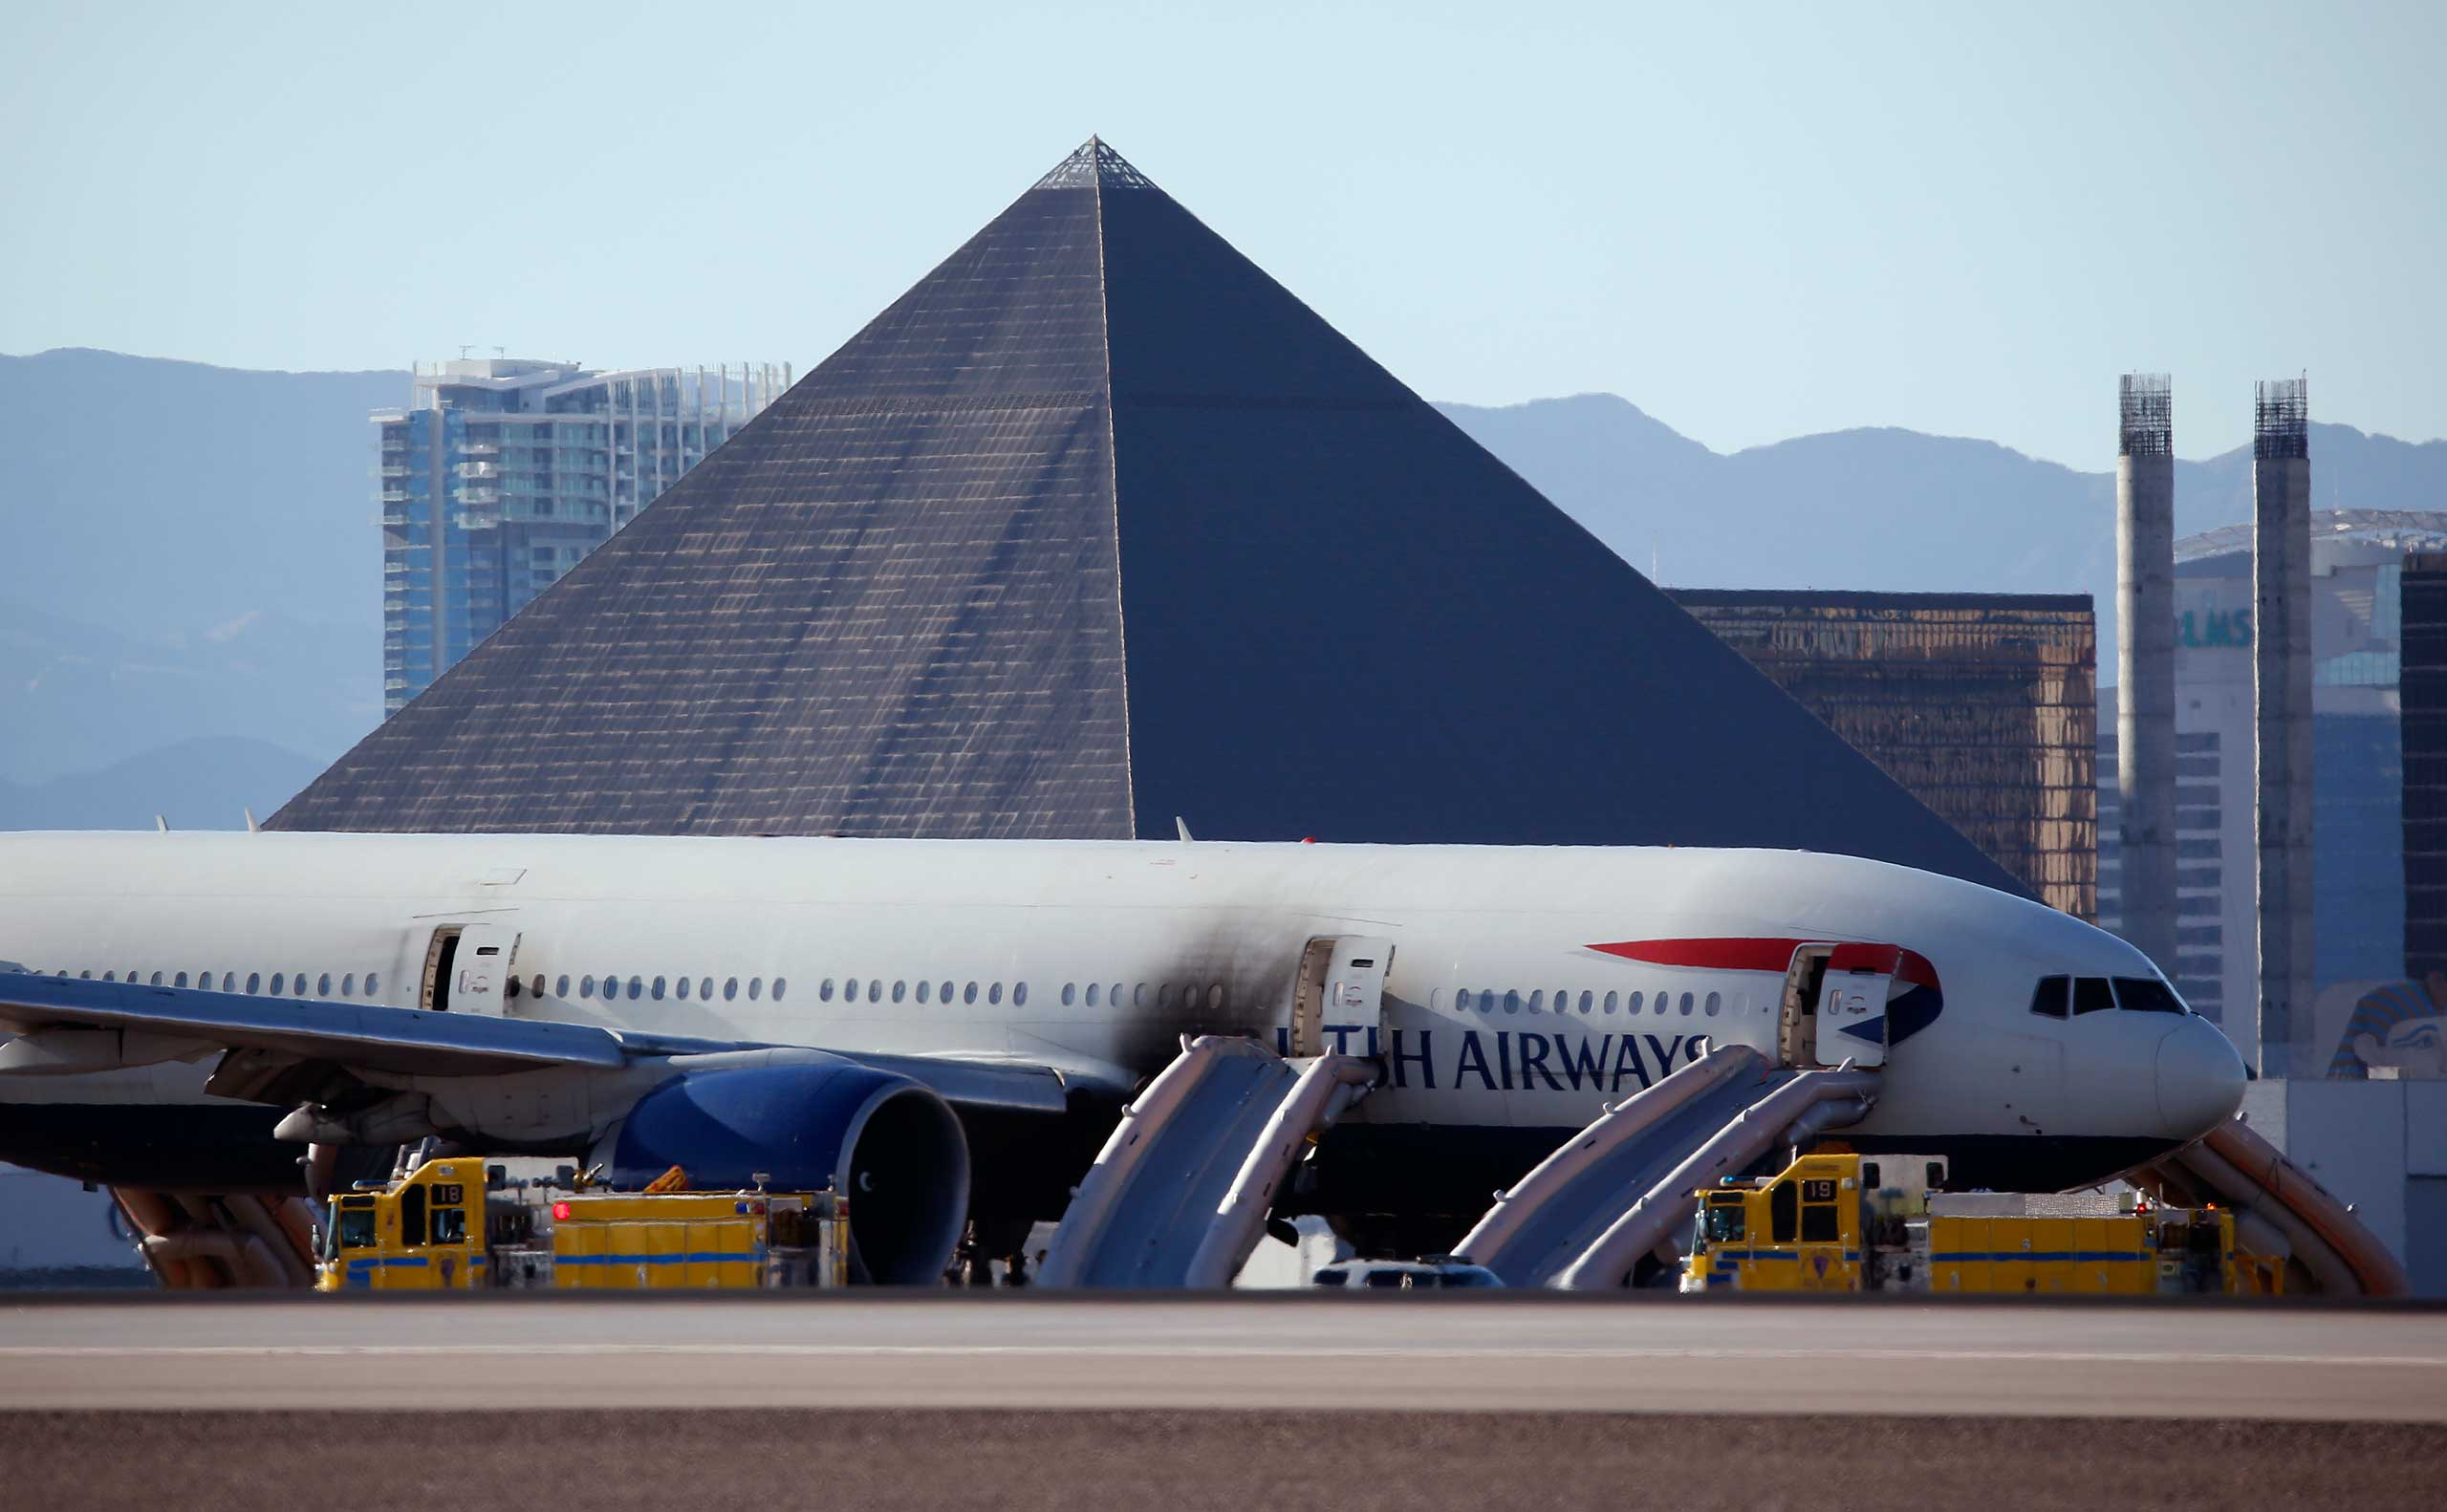 Casinos along the Las Vegas Strip can be seen behind a plane that caught fire at McCarren International Airport , in Las Vegas, on Sept. 8, 2015.